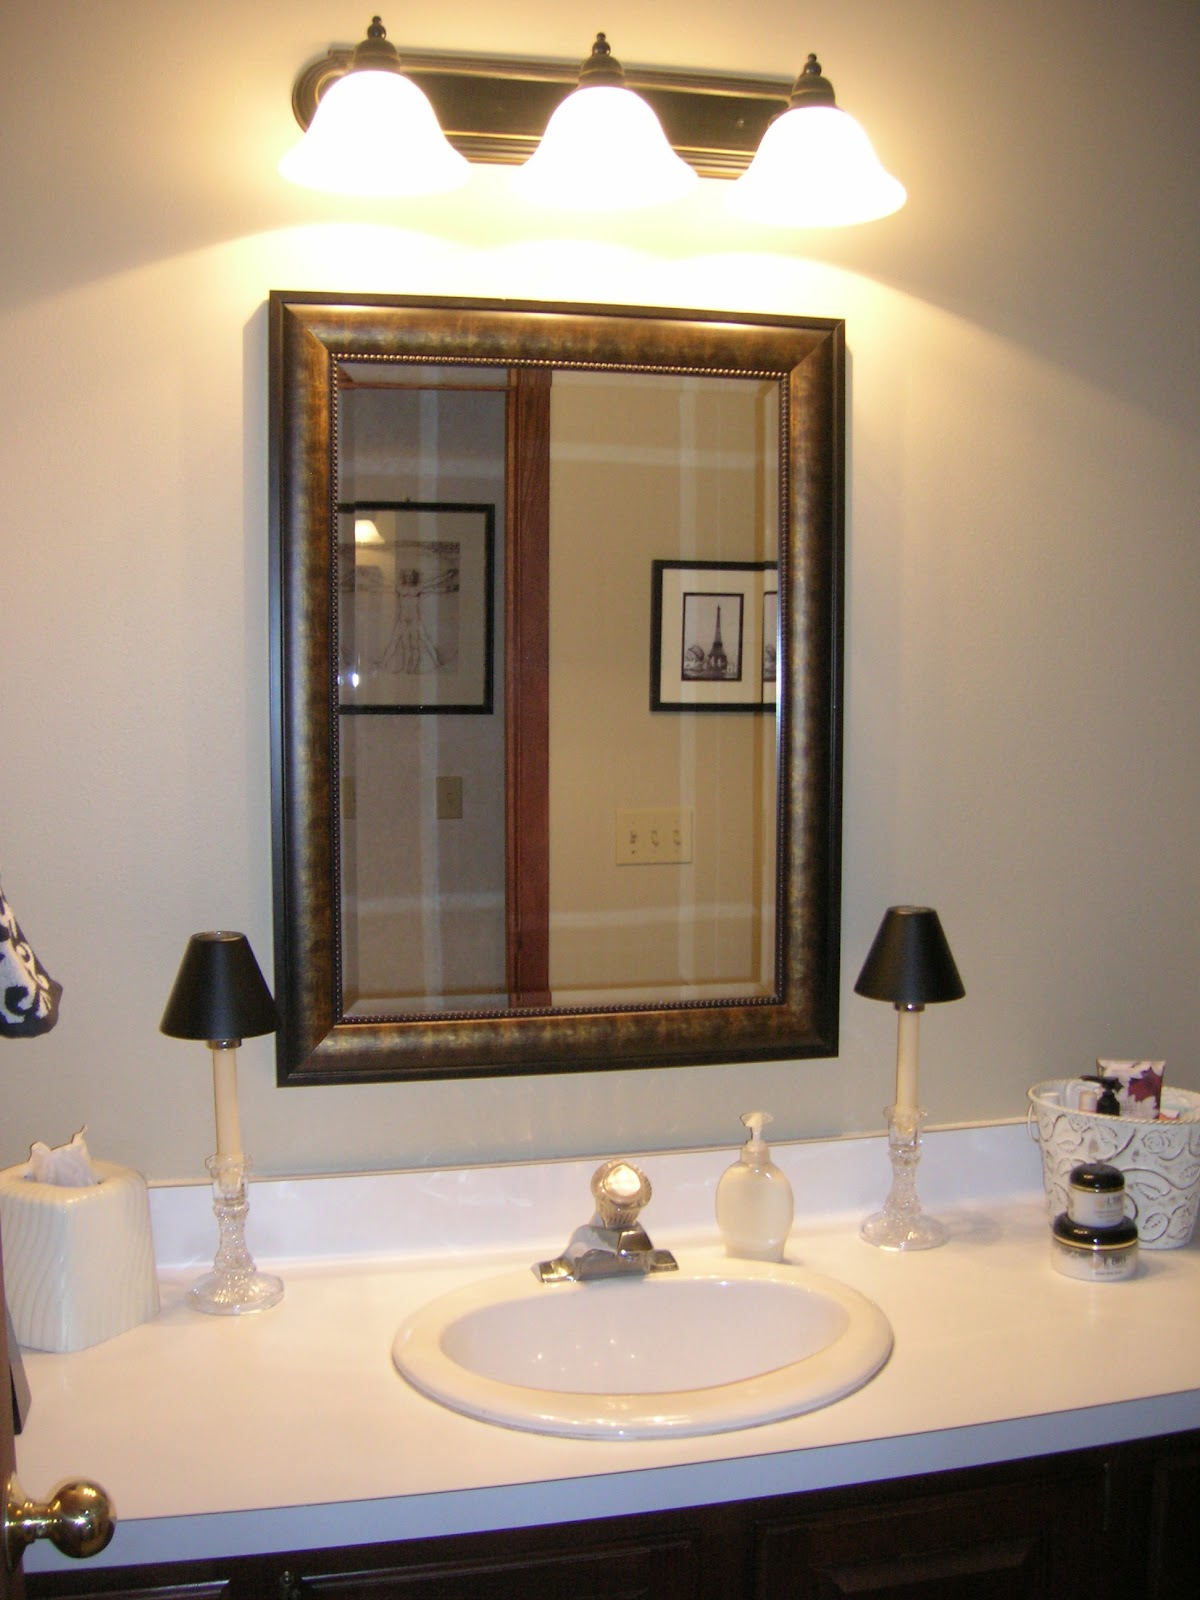 Maison newton bathroom finished - Bathroom vanity mirror side lights ...